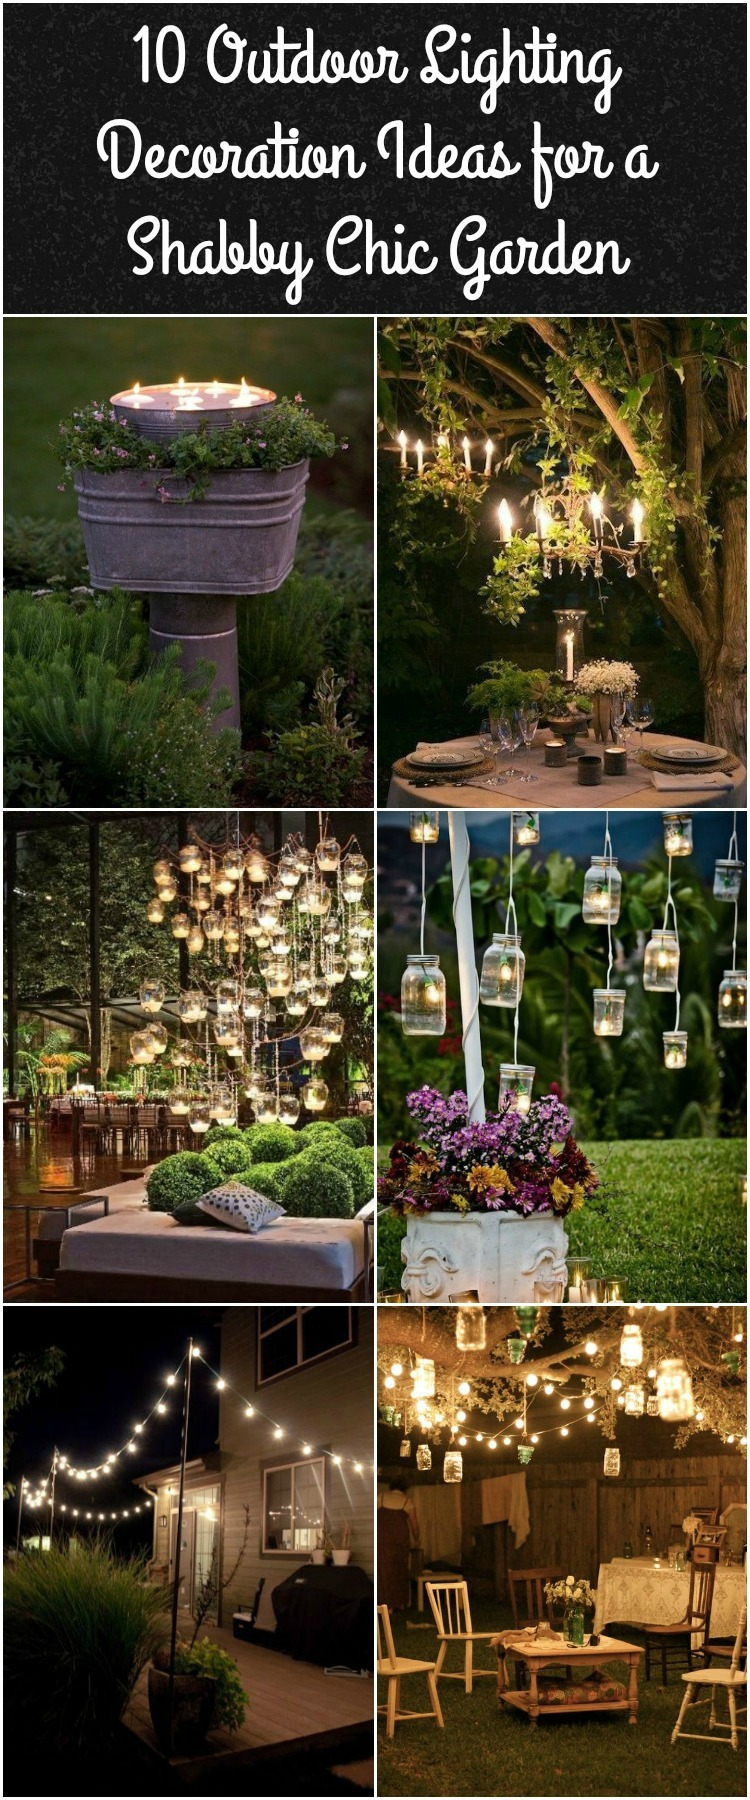 10 outdoor lighting ideas for a shabby chic garden 6 is lovely. Black Bedroom Furniture Sets. Home Design Ideas